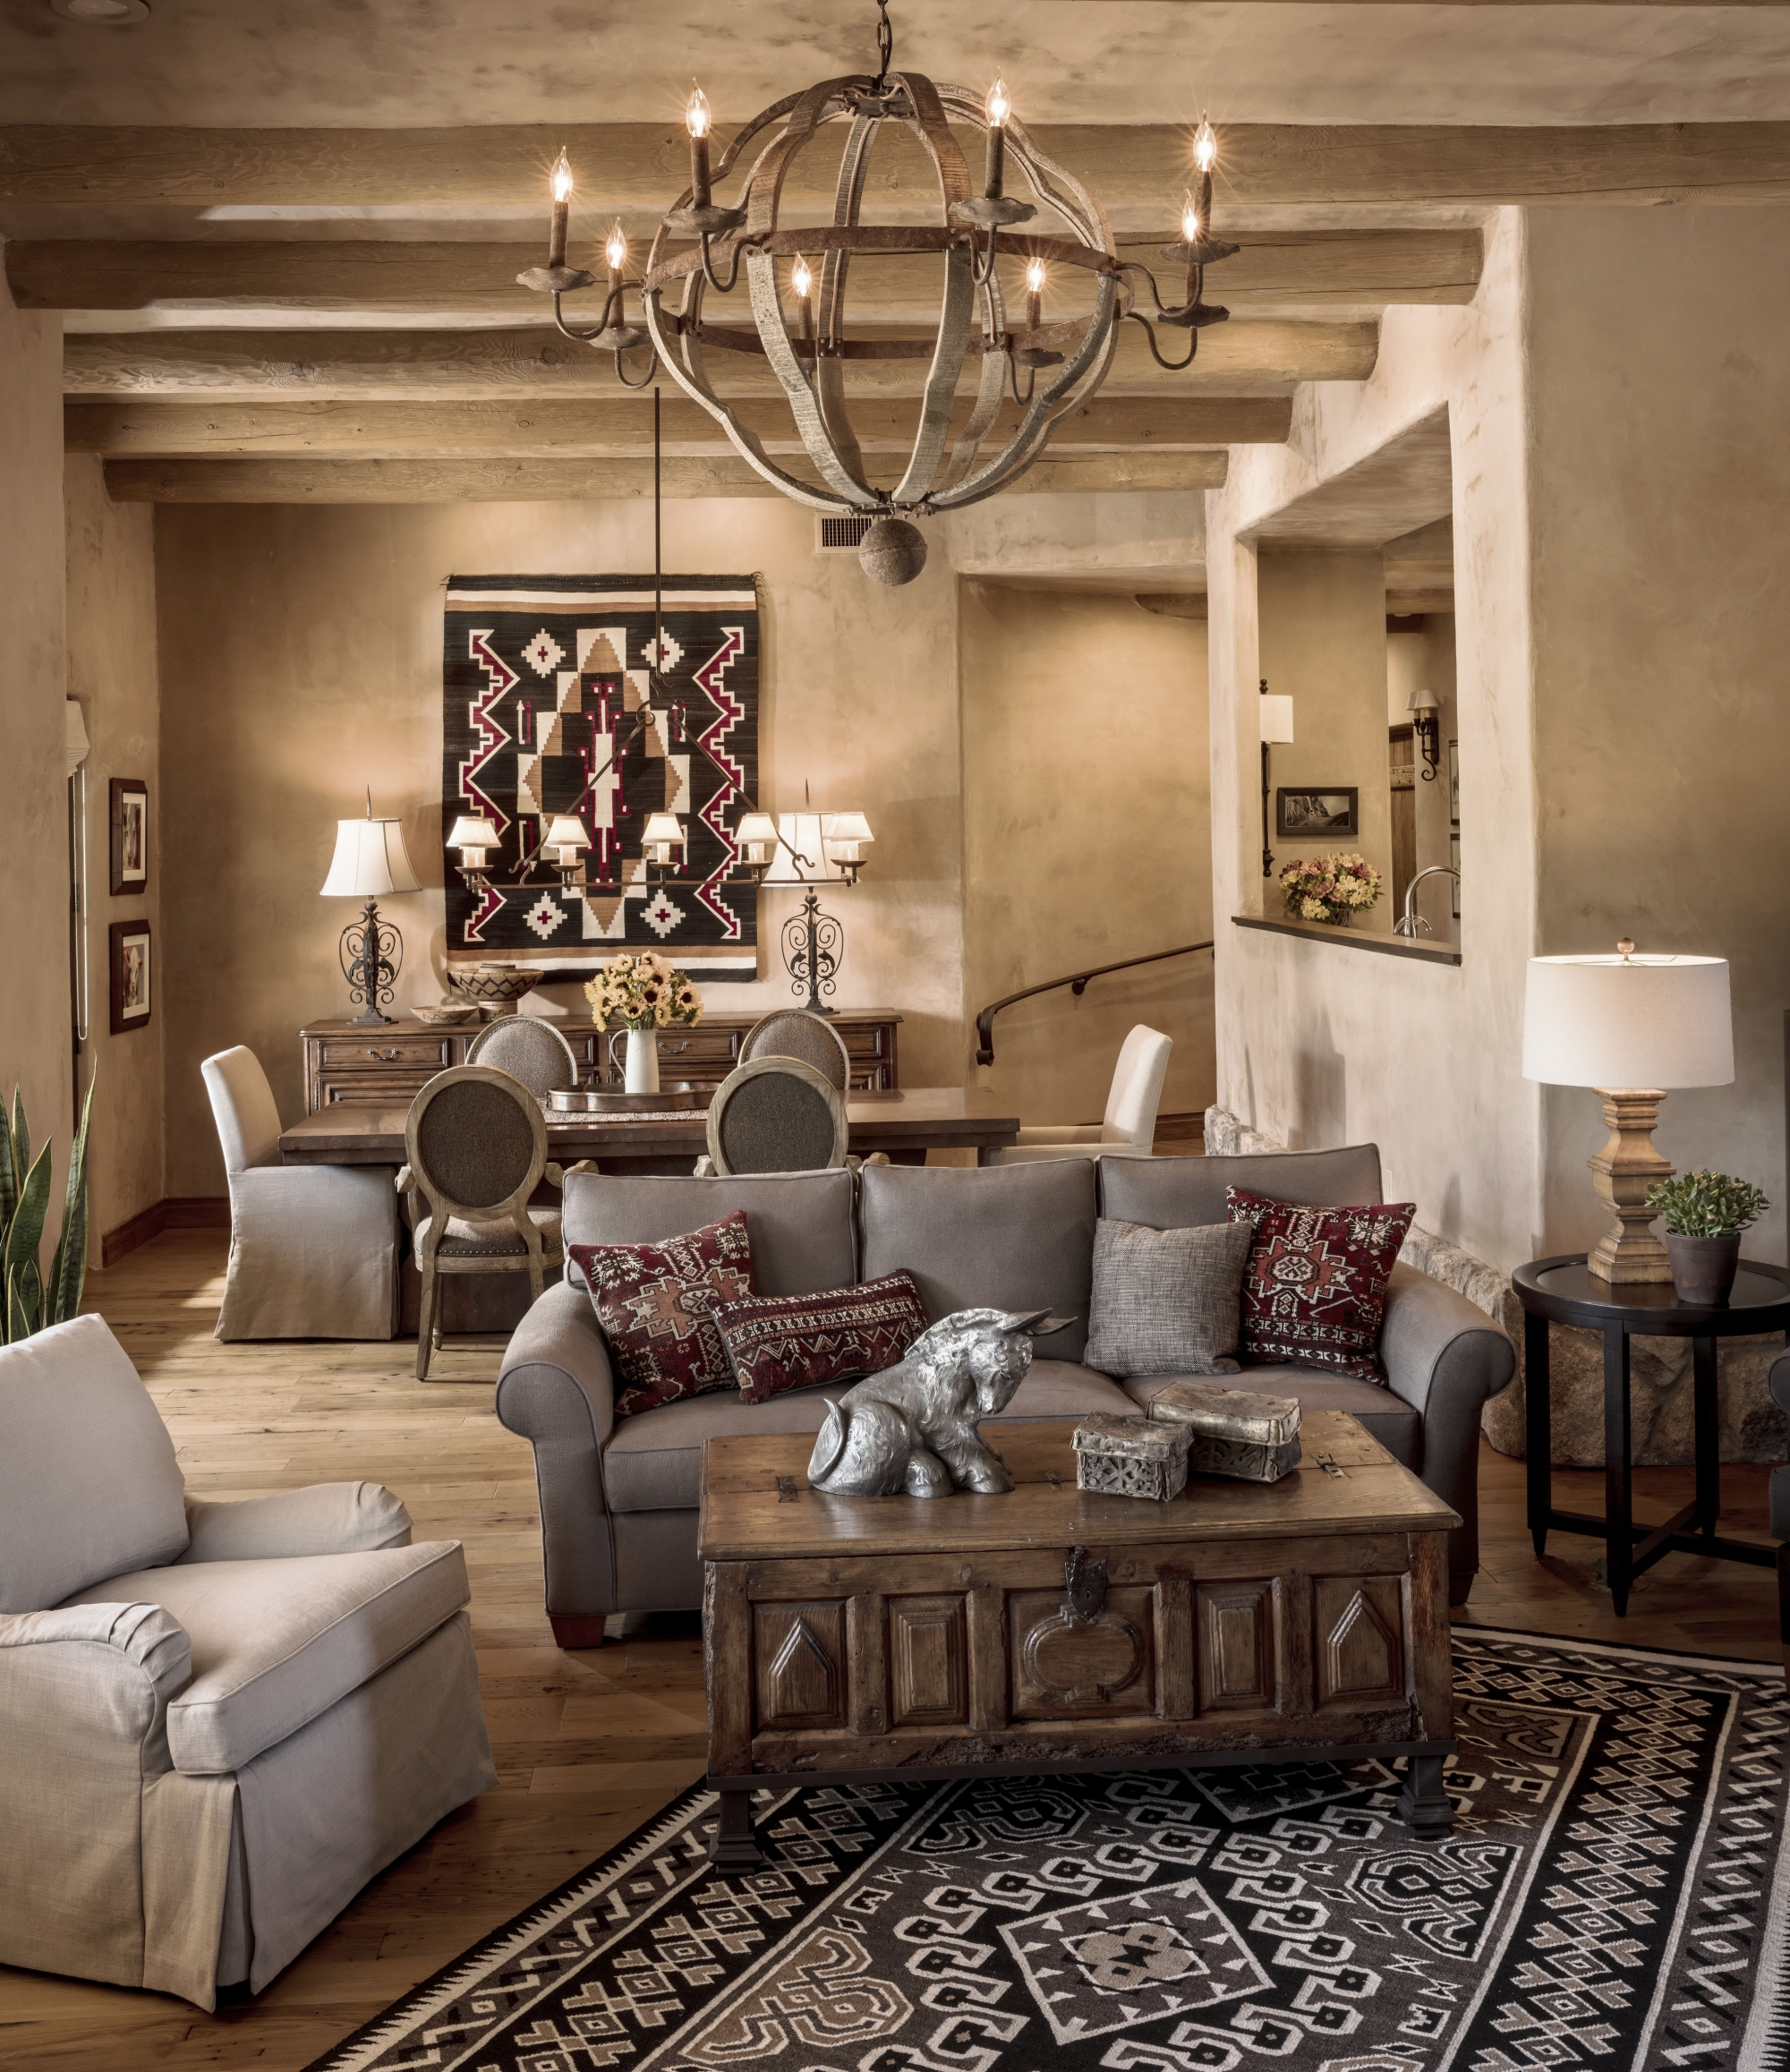 A Rustic Lodge Style Living Room Makeover: Warm And Casual Southwest Style Is Hot In Decor